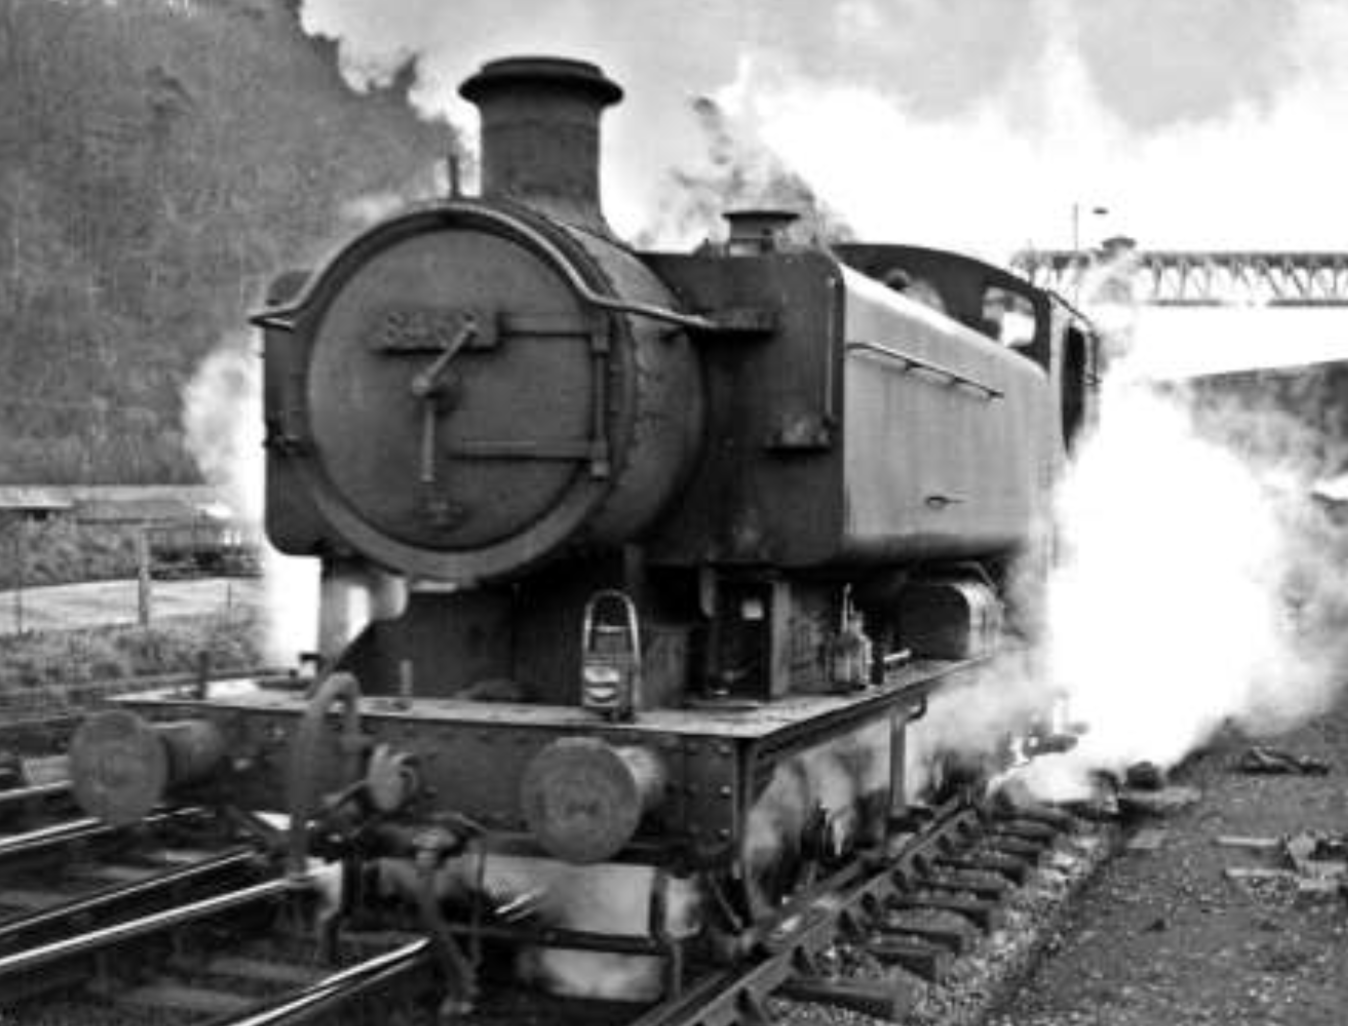 Hawksworth 94XX Pannier 8469 at Walnut Tree Junction, Taff's Well, in early 1964.  A Radyr loco, she was withdrawn months after this shot was taken and had a working life of just 13 years. In the background, spanning the Taff Gorge, is the Barry Railway's magnificent Walnut Tree Viaduct. Photo shown with kind permission of Robert Masterman.